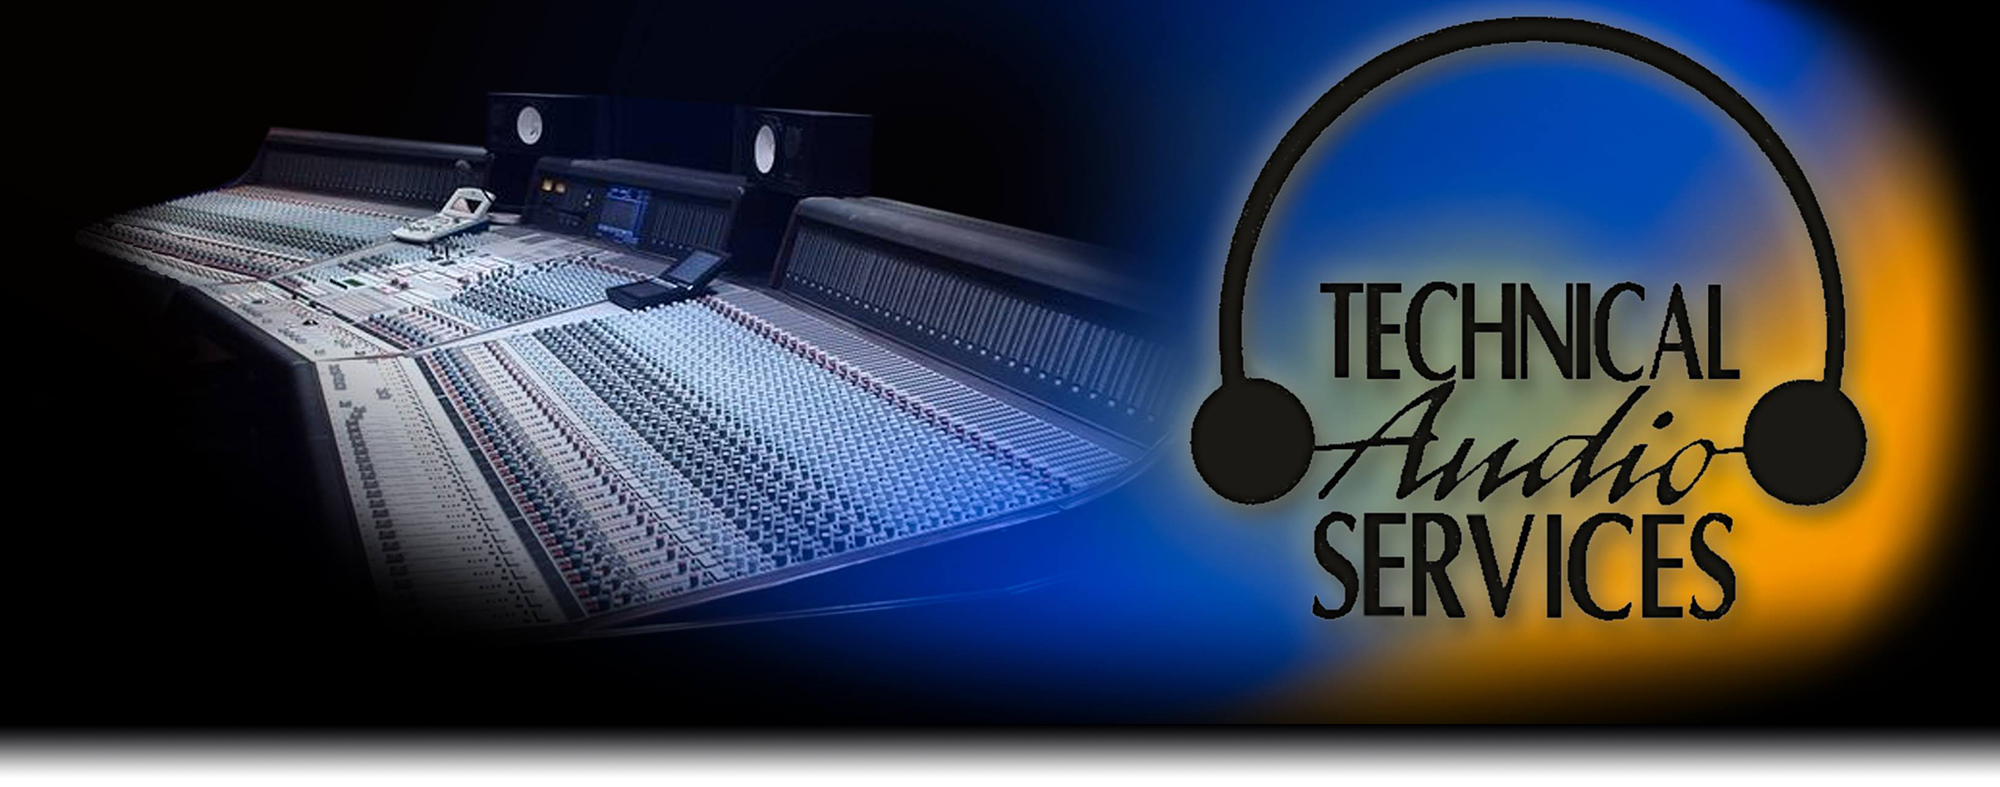 Technical Audio Services